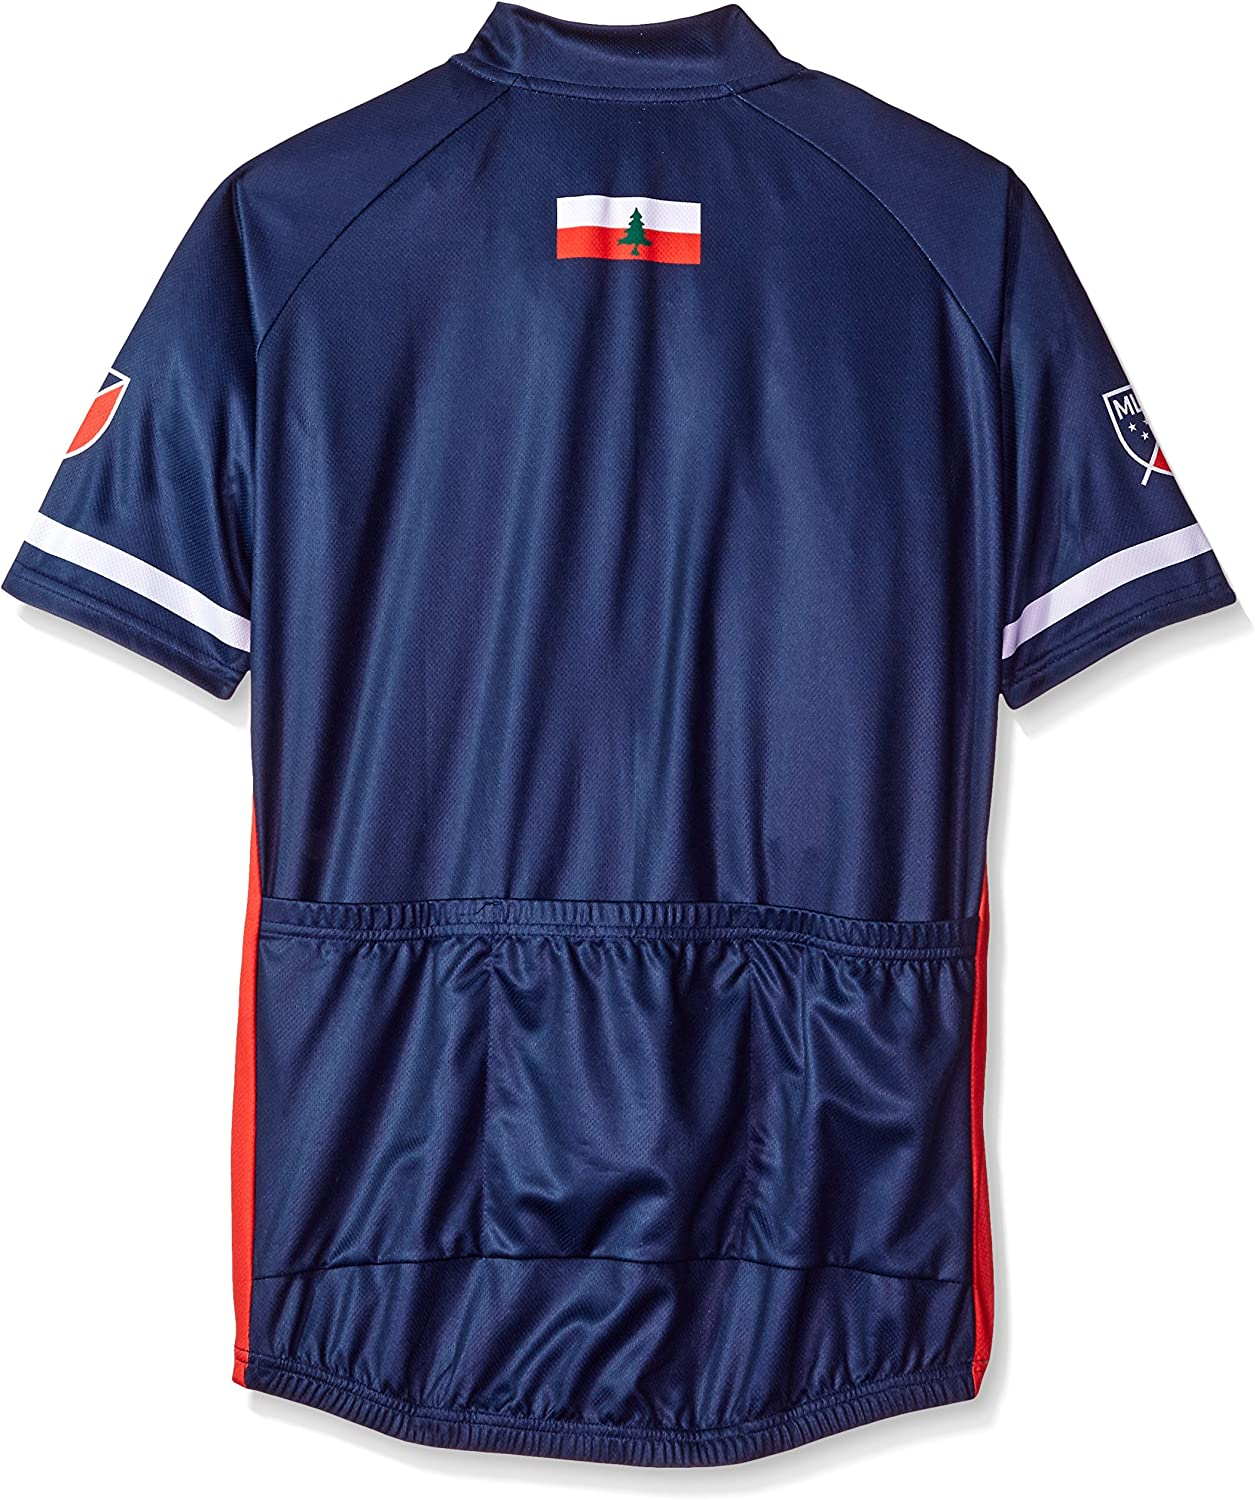 VOmax San Jose Earthquakes Primary Short Sleeve Cycling Jersey